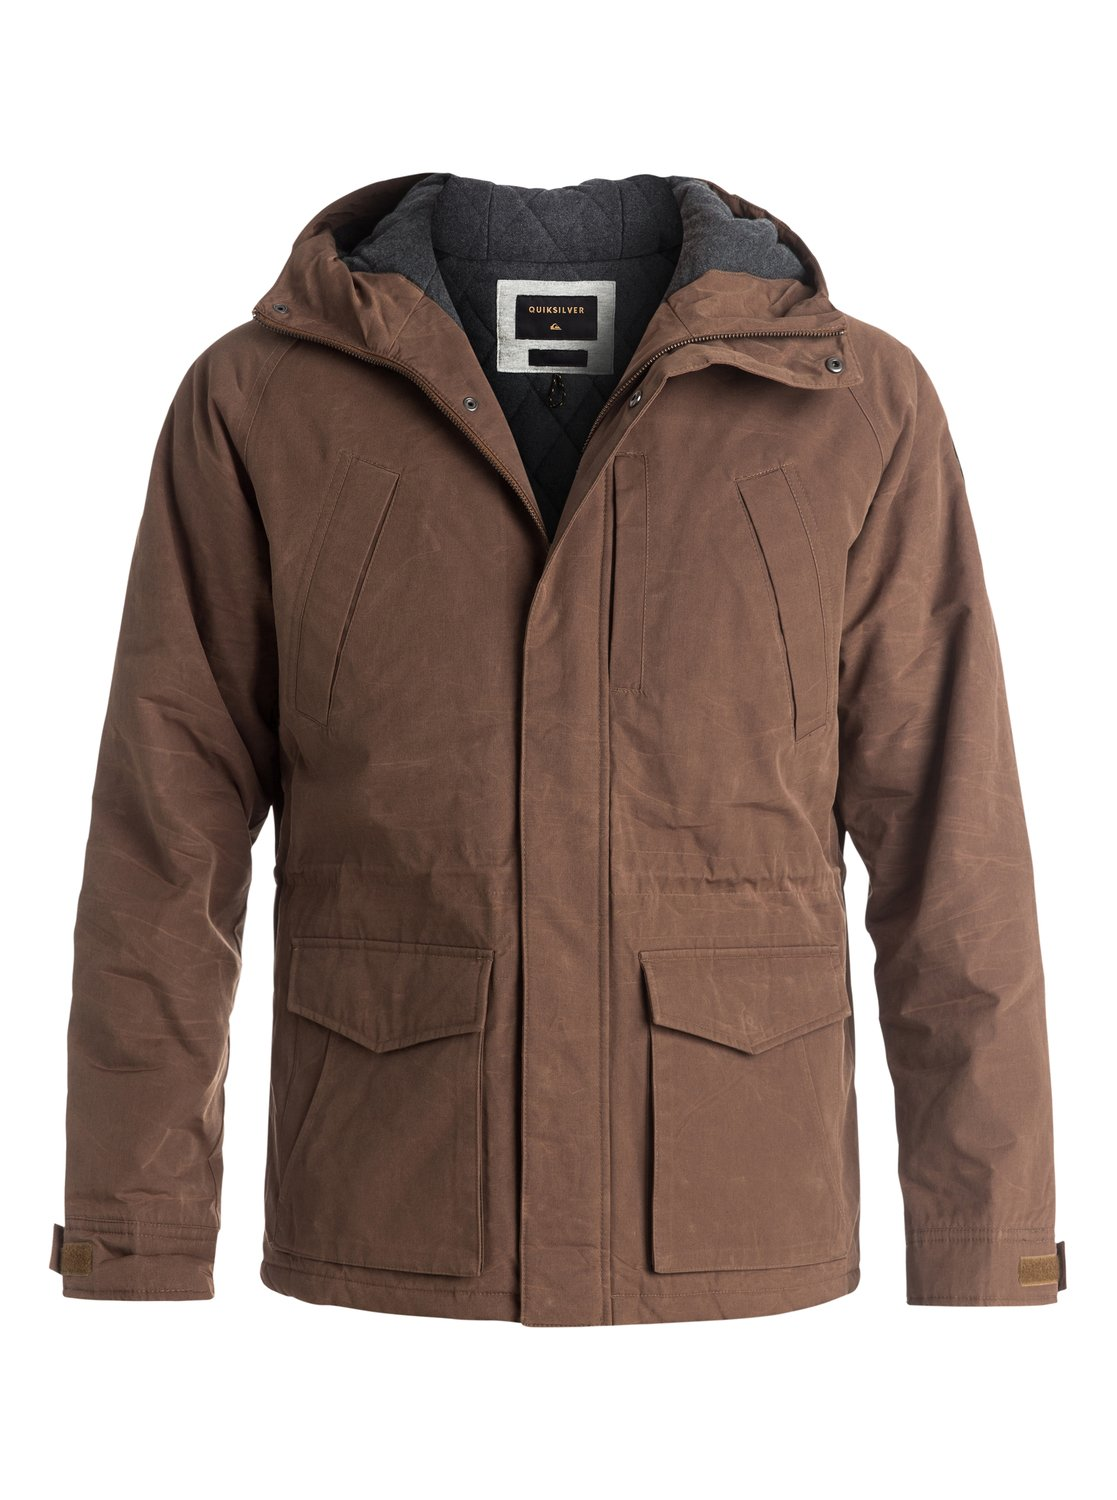 Quiksilver-Sealakes-Parka-matelassee-pour-homme-EQYJK03236